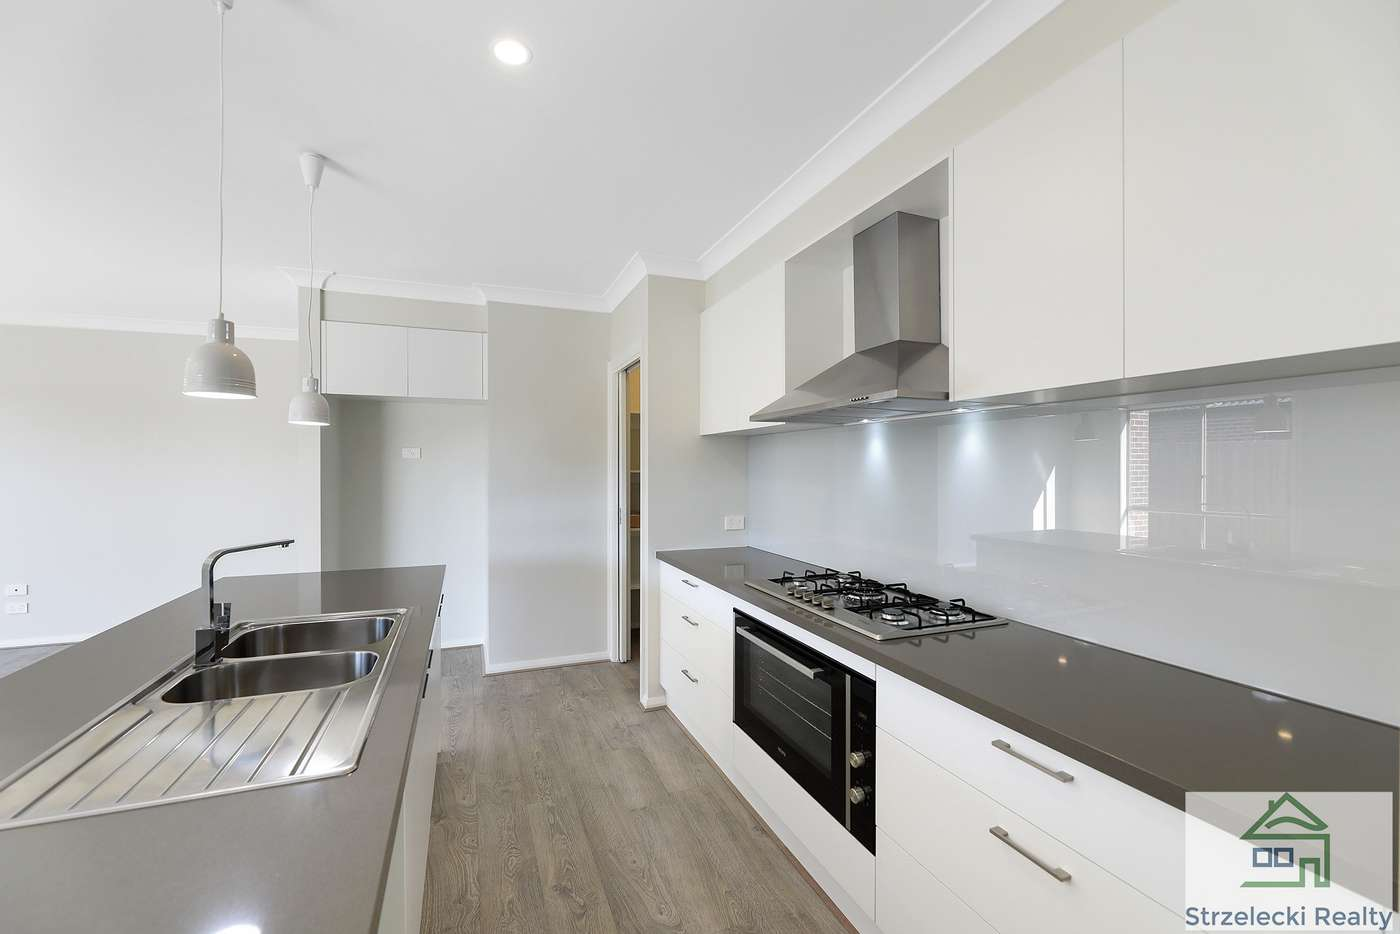 Seventh view of Homely house listing, 64B Contour Road, Trafalgar VIC 3824